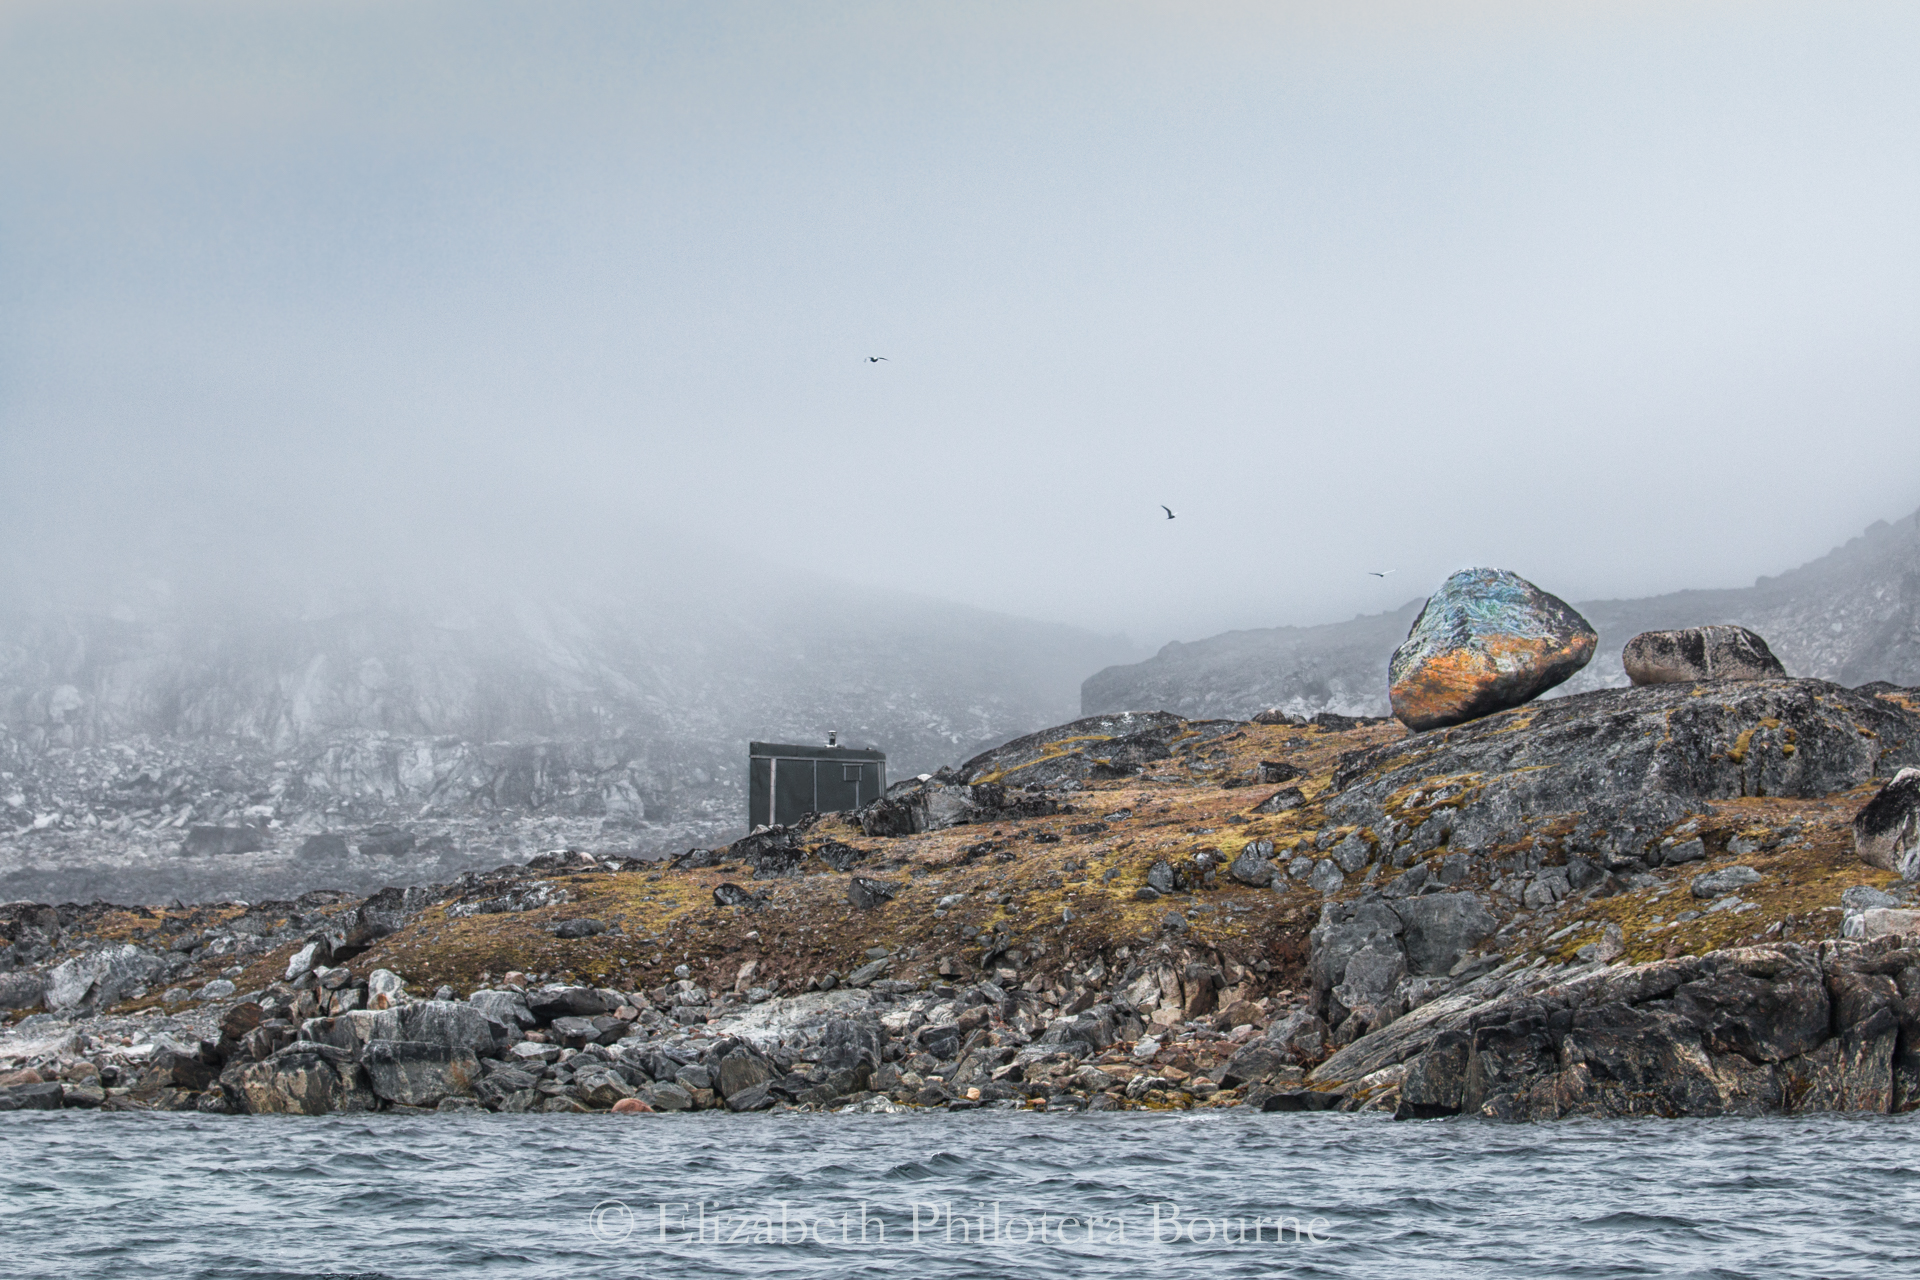 Small hut for a hunter on a peninsula surrounded by glacial errata in Svalbard